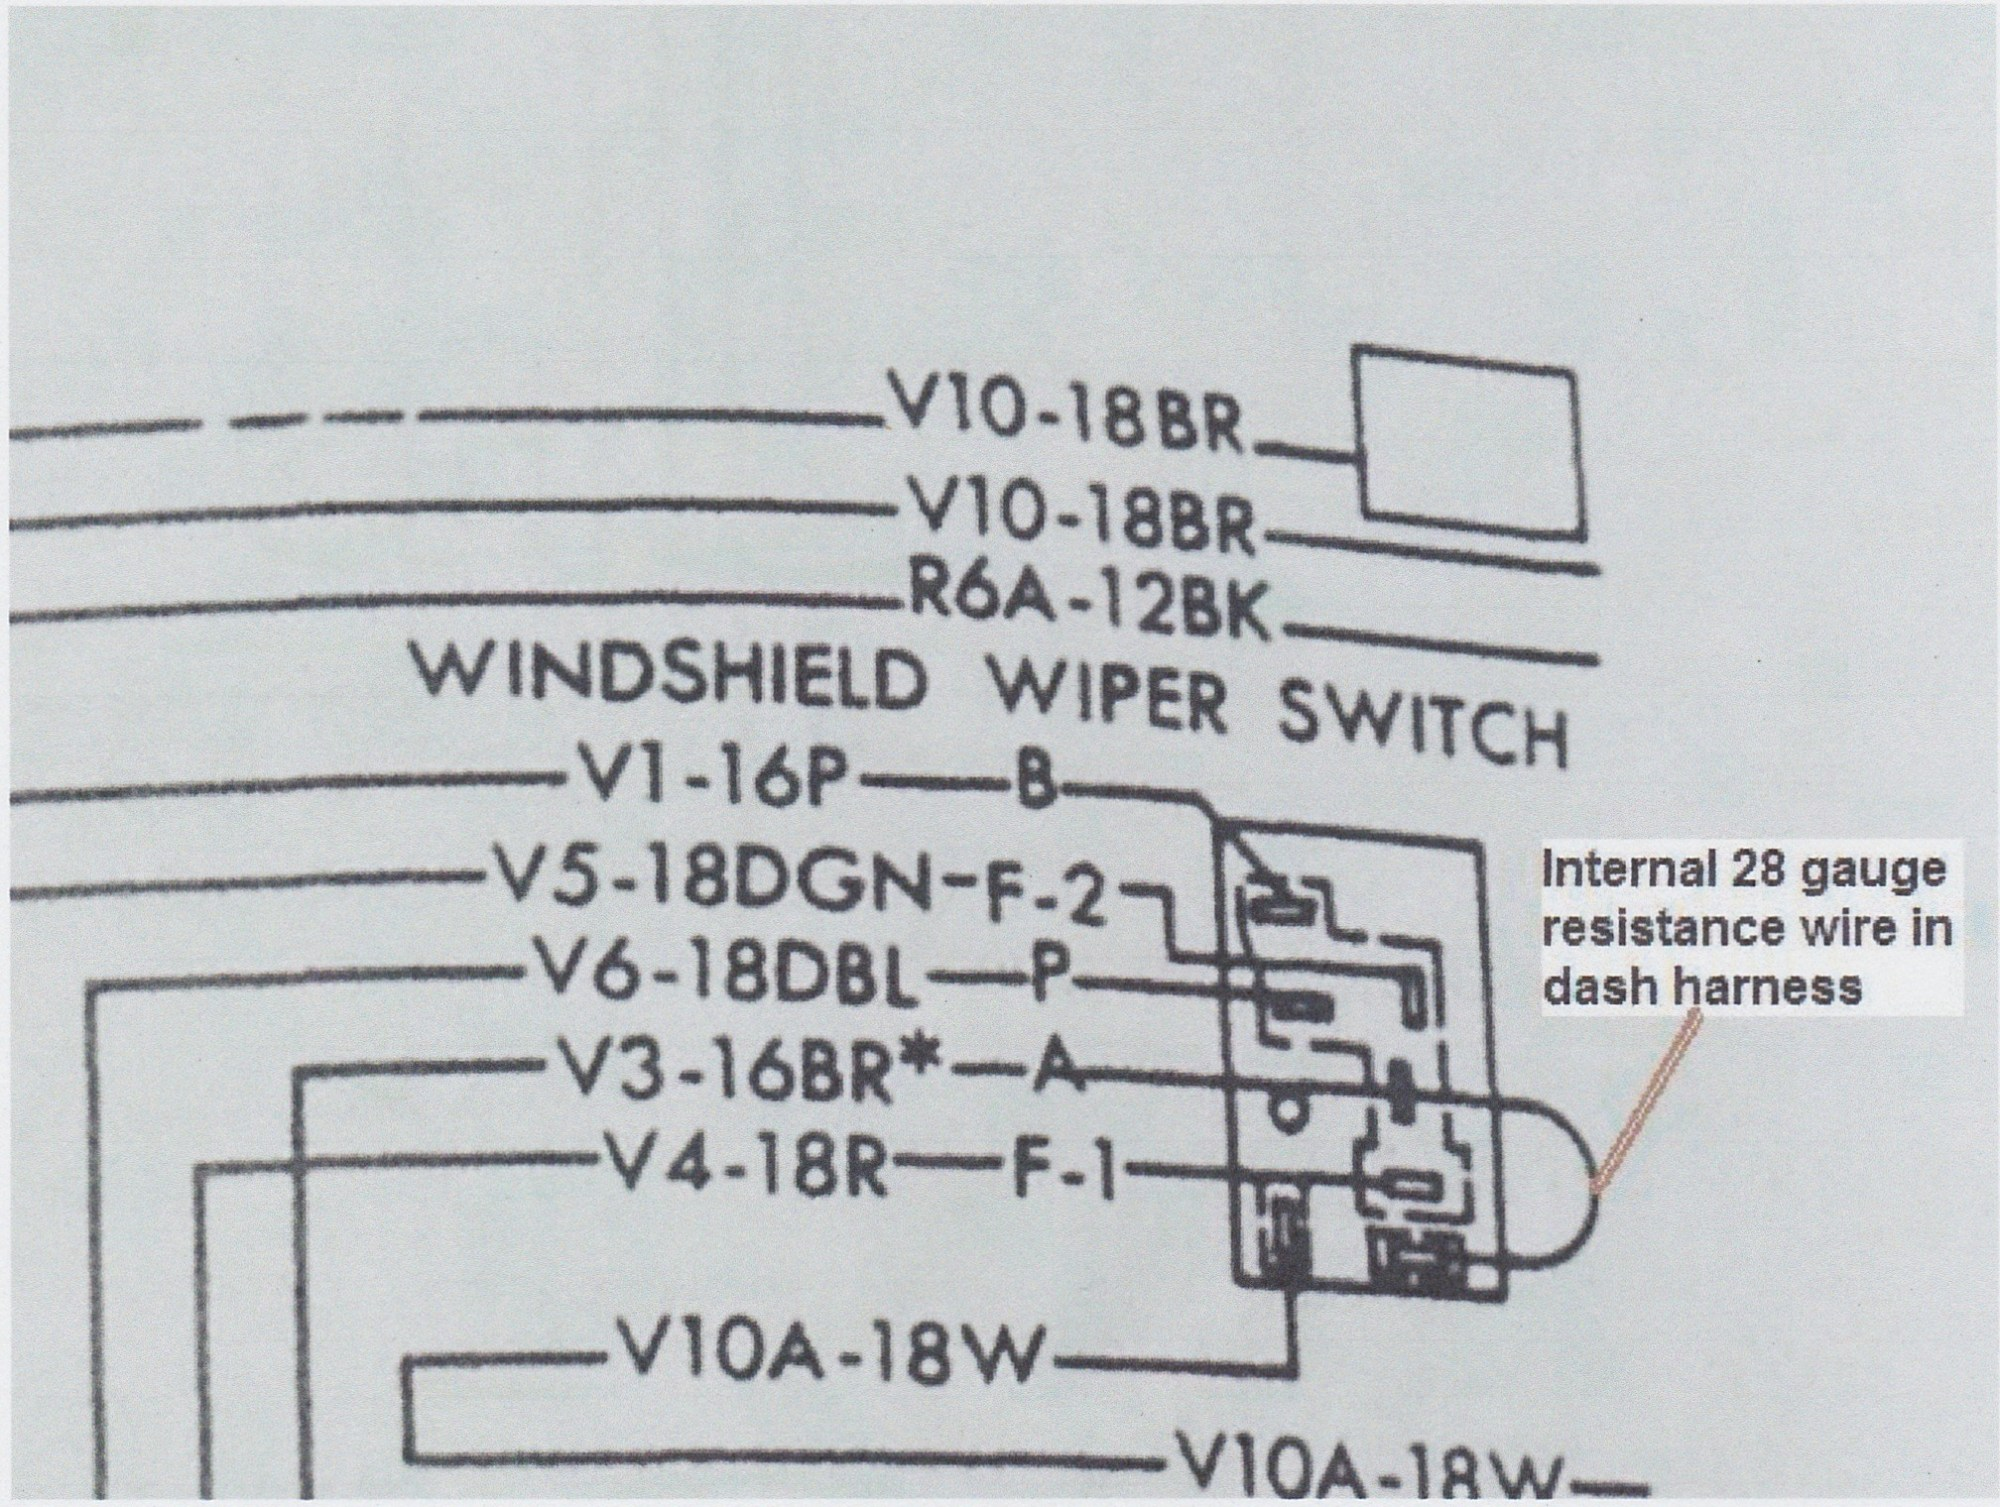 hight resolution of 1969 plymouth road runner dash wiring diagram wiring library rh 97 pirmasens land eu 1970 road